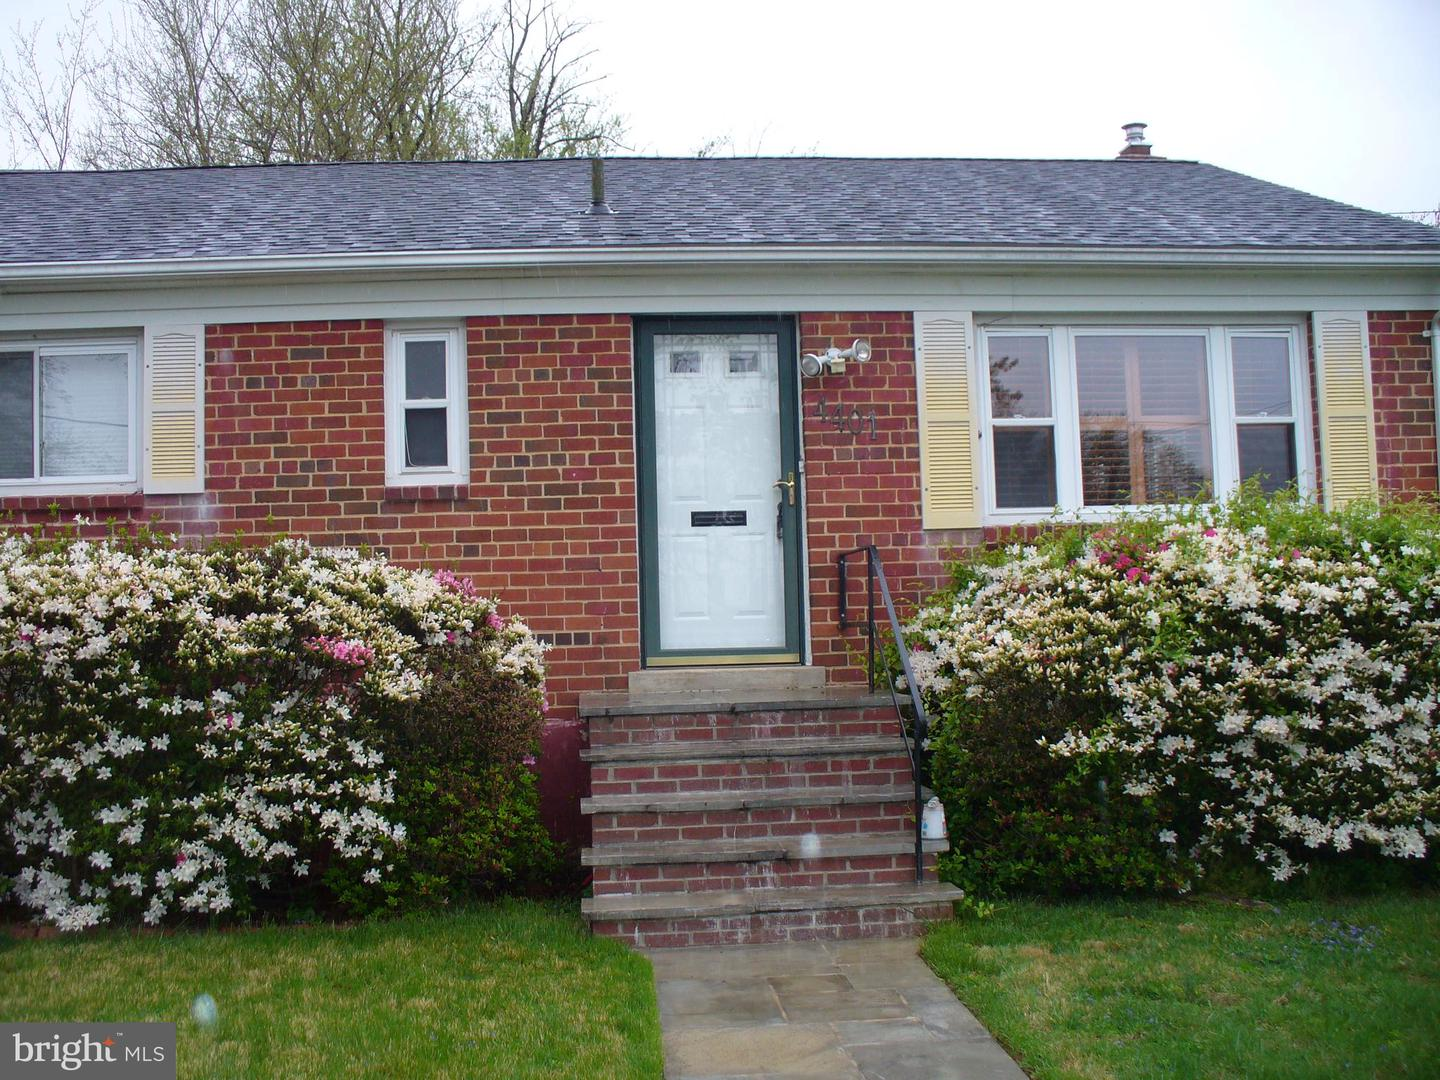 4401 IVES ST, ROCKVILLE, Maryland 20853, 3 Bedrooms Bedrooms, ,2 BathroomsBathrooms,Single Family,For Sale,4401 IVES ST,MDMC753340